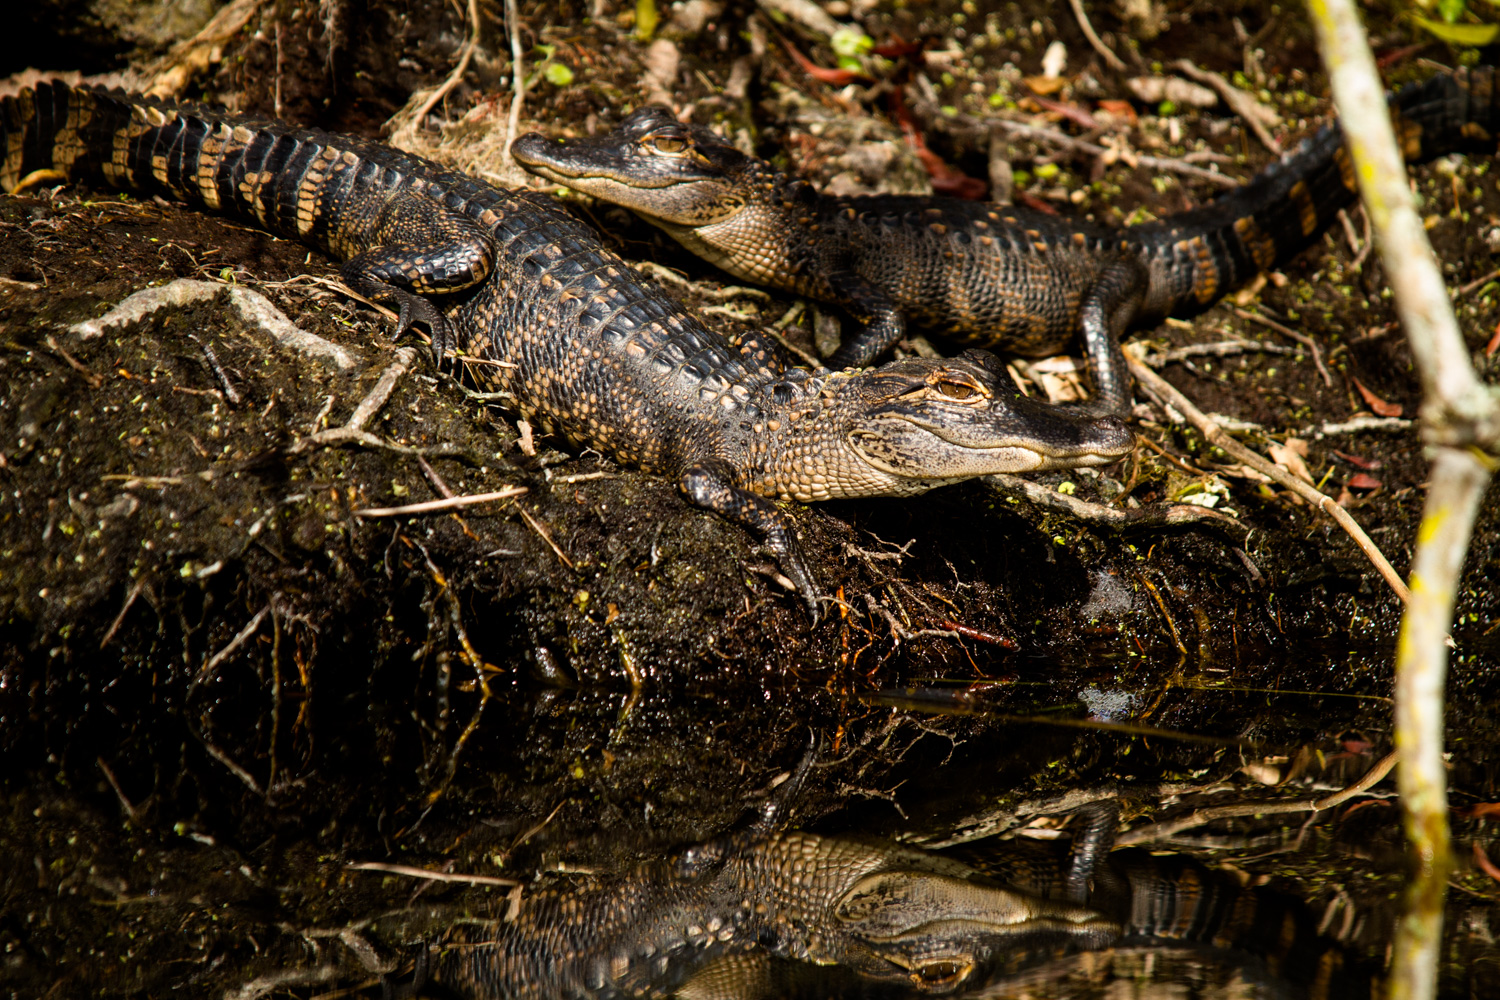 Juvenile American alligators,( Alligator mississippiensis ) bask in the sun near the bank of Silver Glen Spring, Florida. While alligators do not nurture their offspring, even non-related adult alligators are known to come to the aid of juveniles upon hearing distress cries.